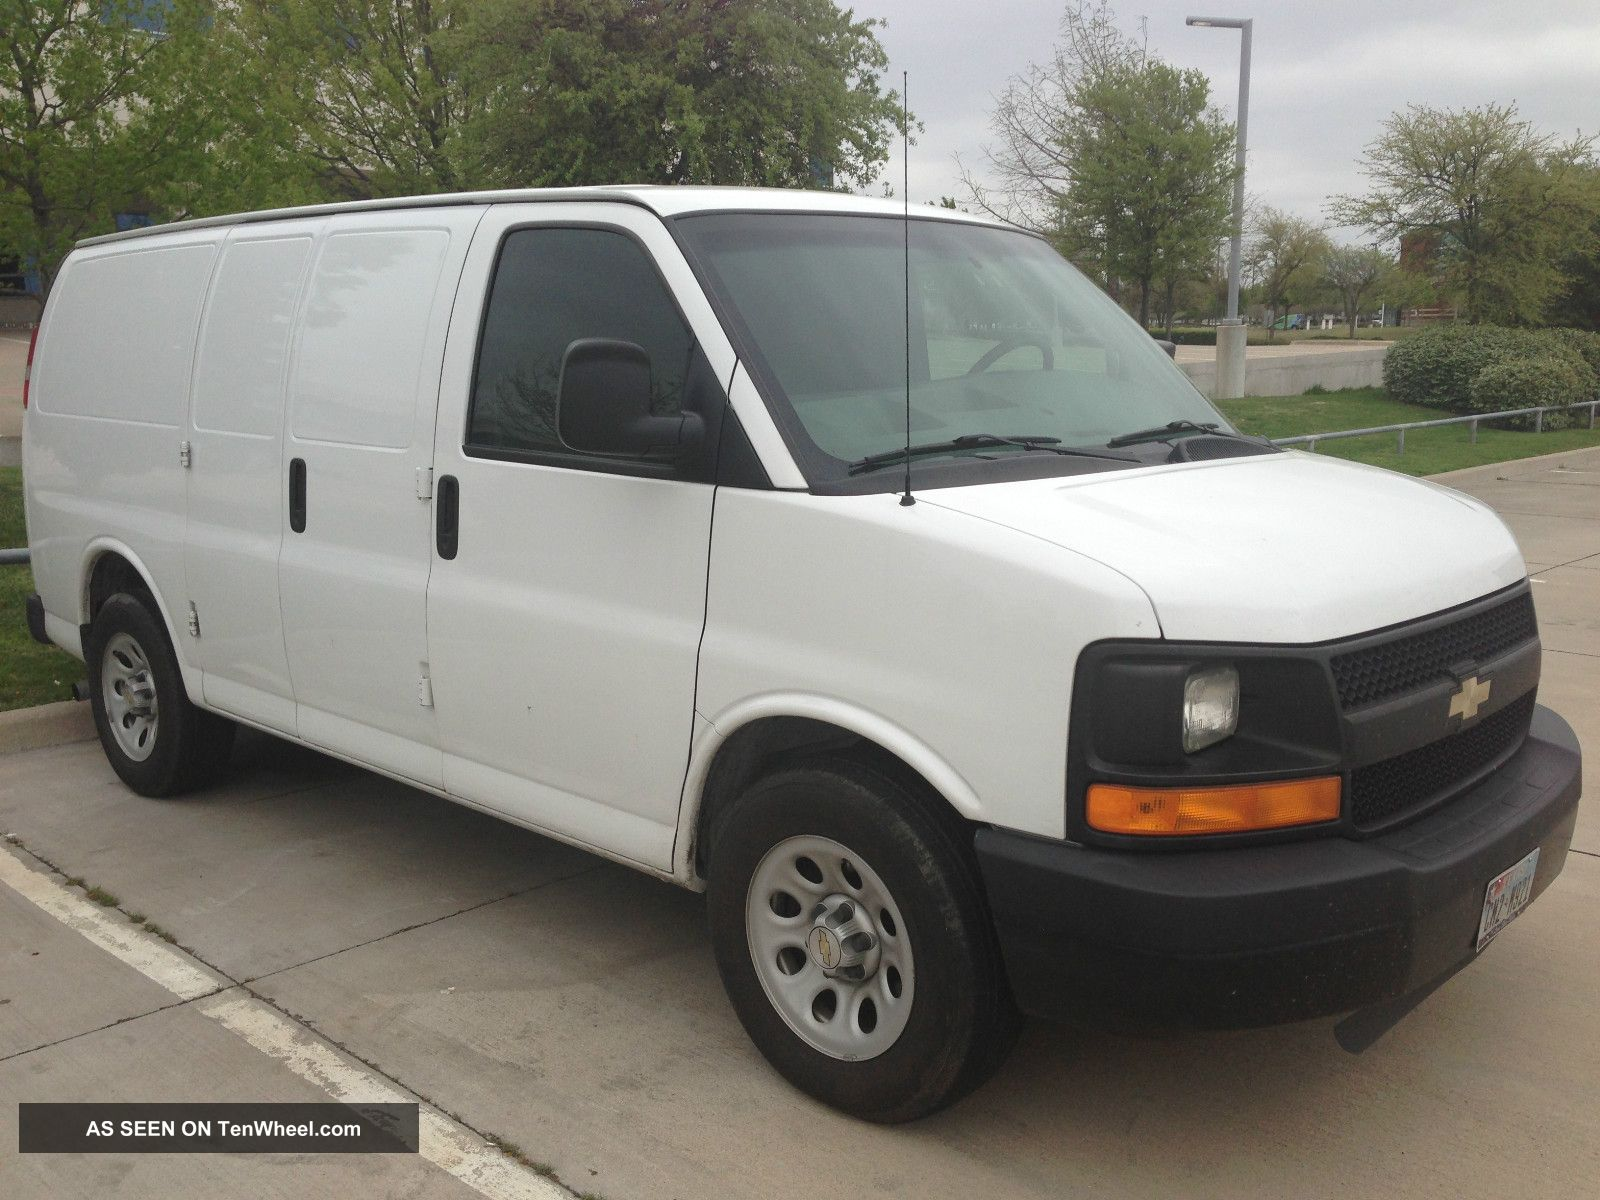 2009 chevrolet express 1500 cargo van 4 door 5 3l flex fuel e85 awd. Black Bedroom Furniture Sets. Home Design Ideas